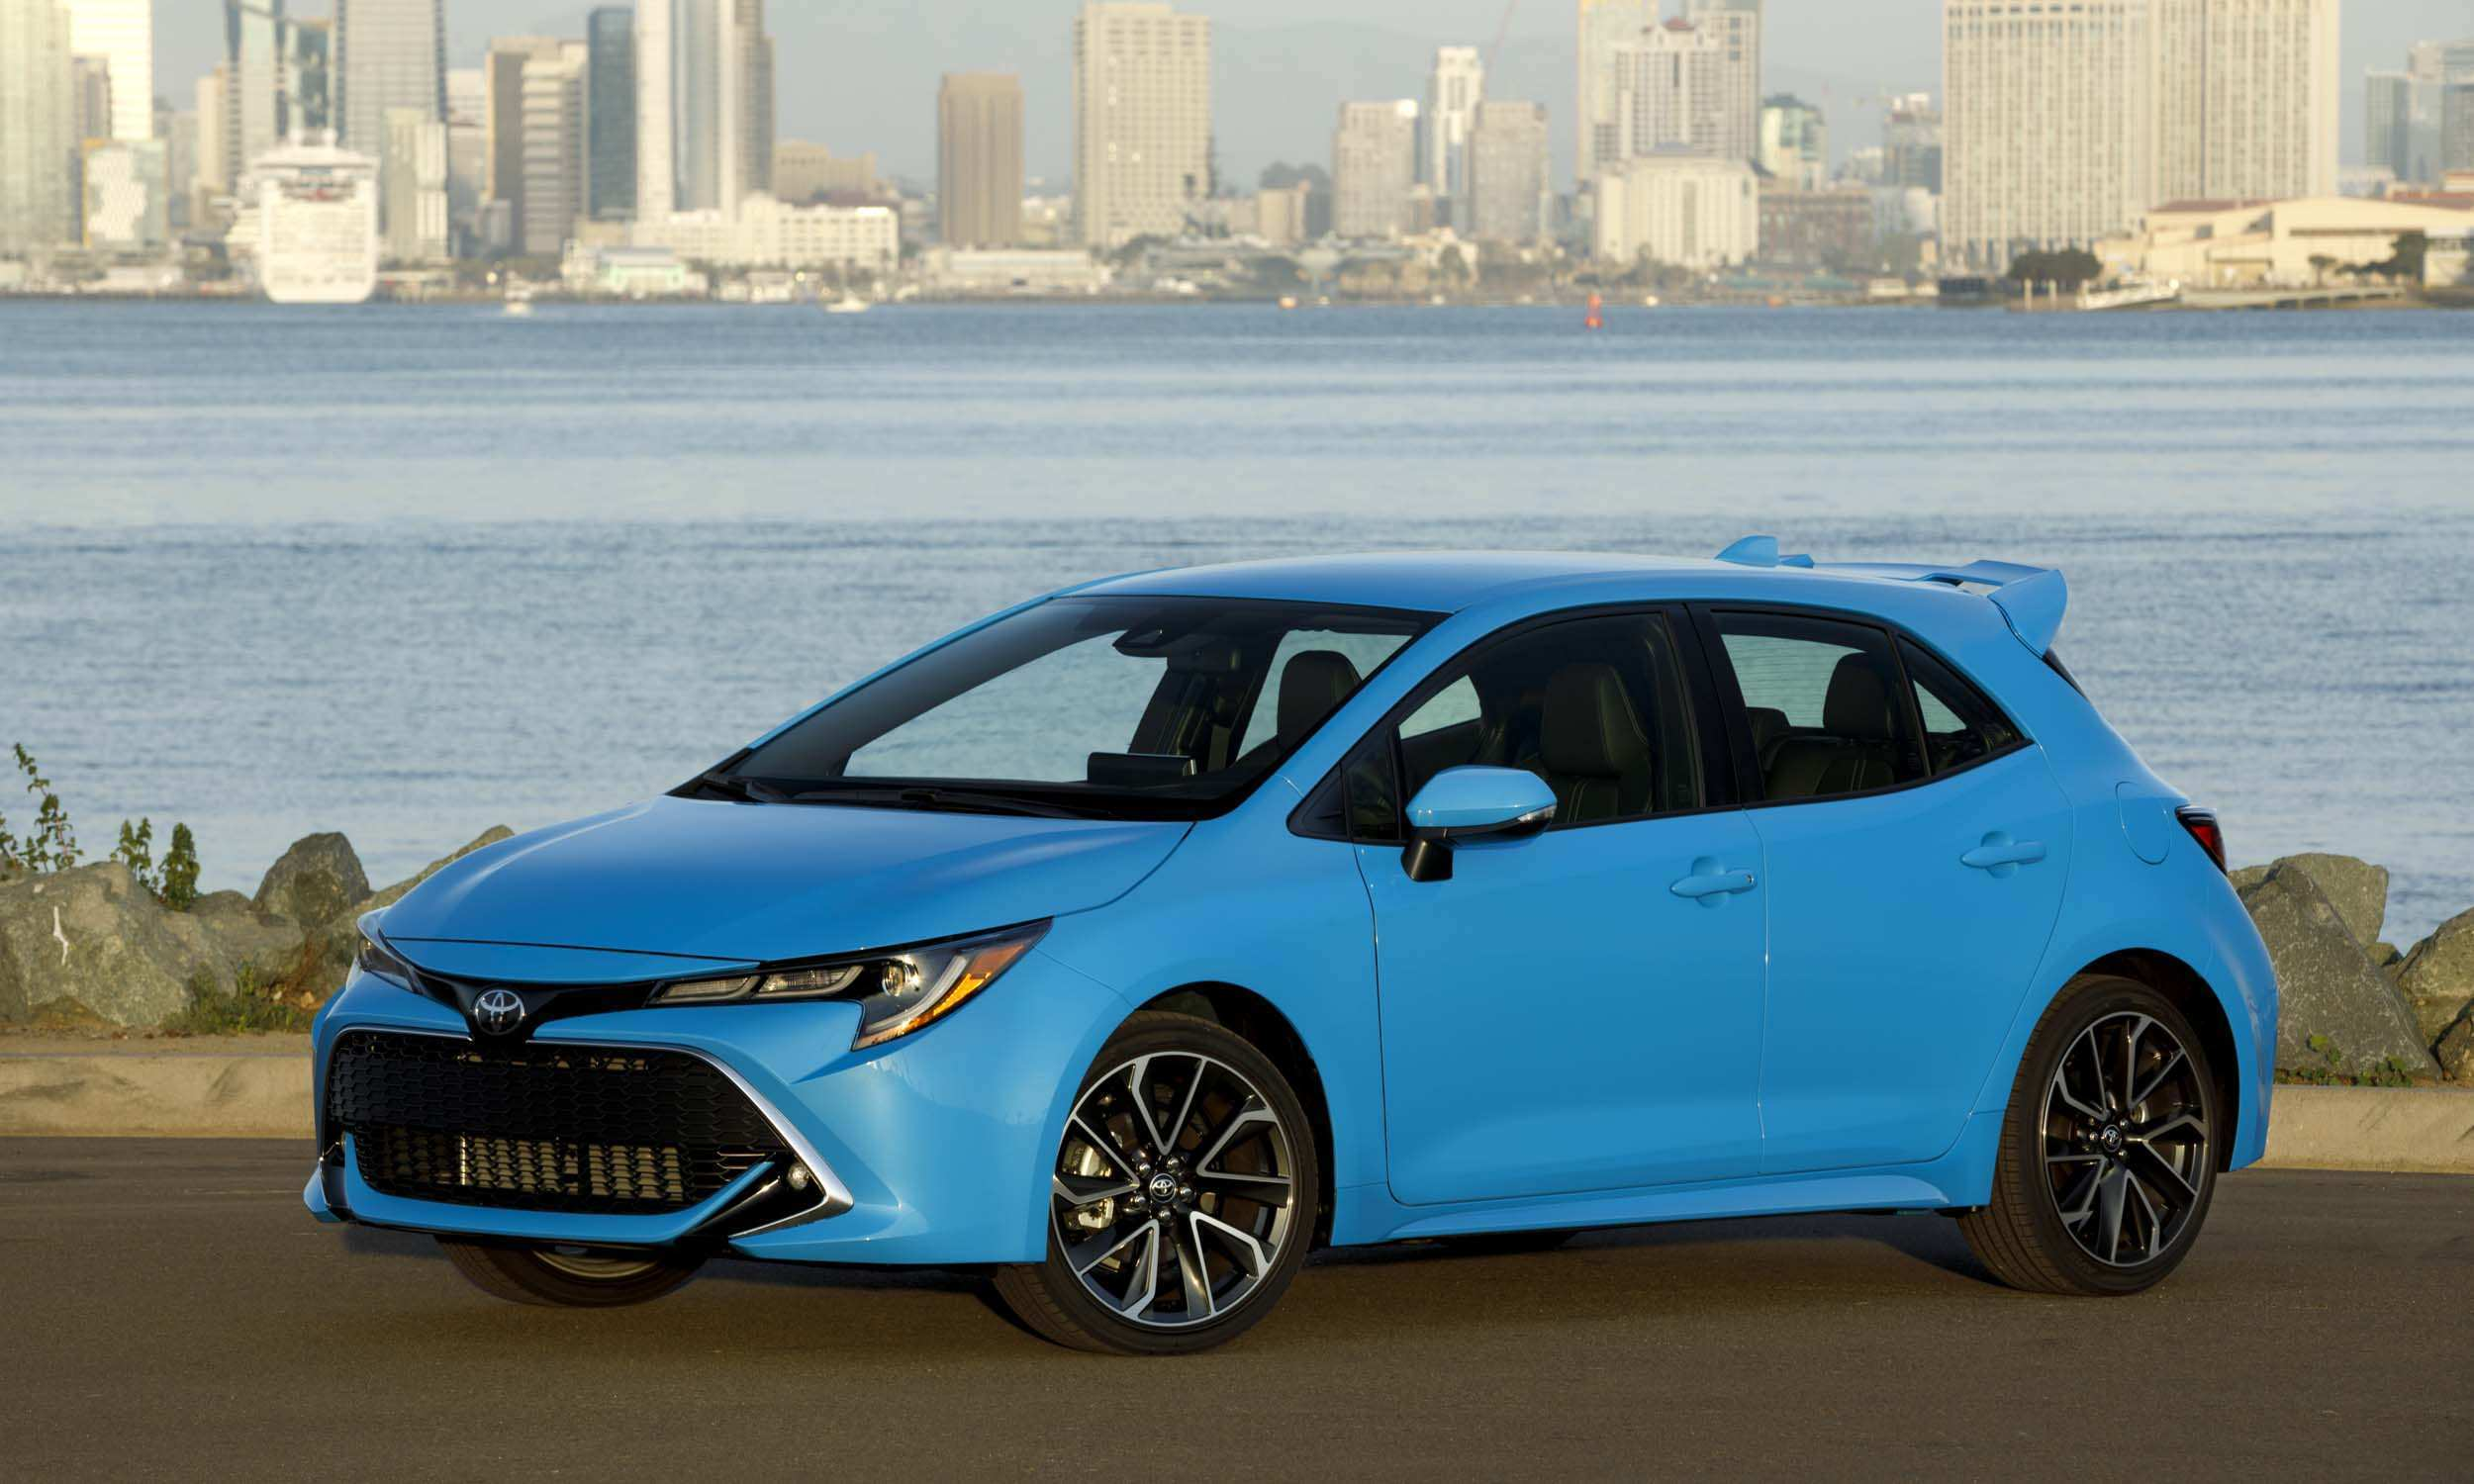 75 New 2020 Toyota Corolla Hatchback Release Date